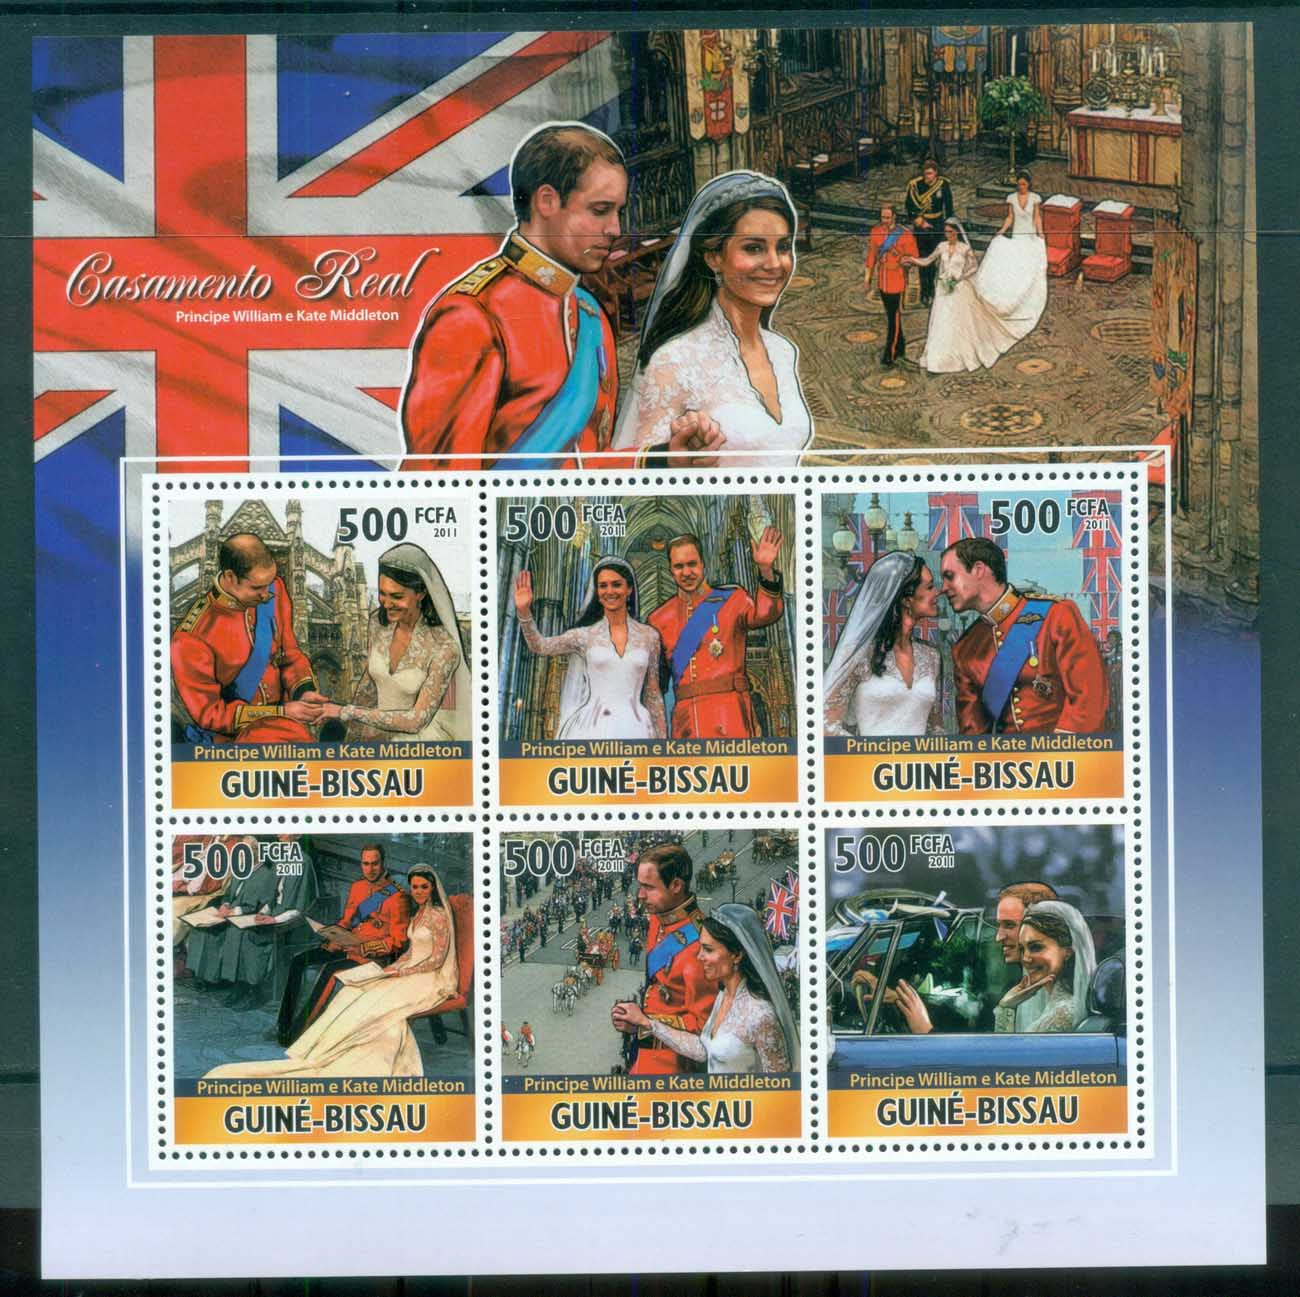 Guinea Bissau 2011 Famous People, Royalty, William & Kate MS MUH GB11304a